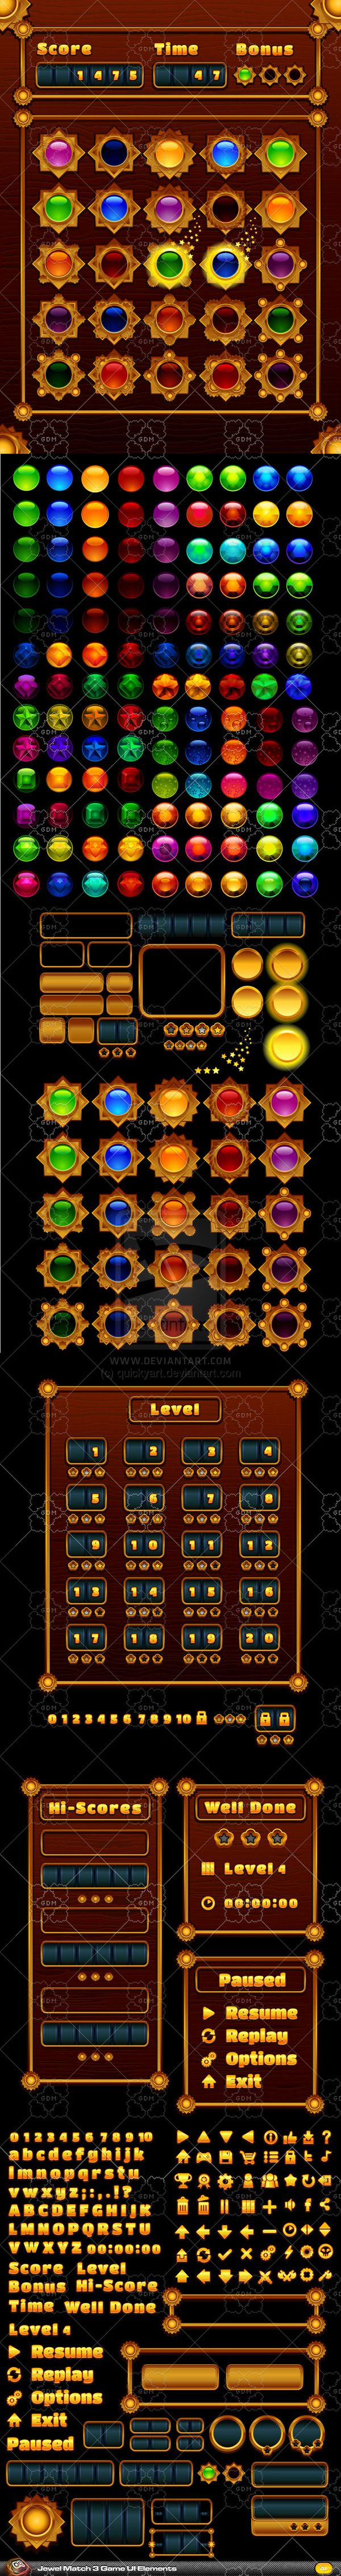 Jewel Game - Match 3 - UI Elements by quickyart